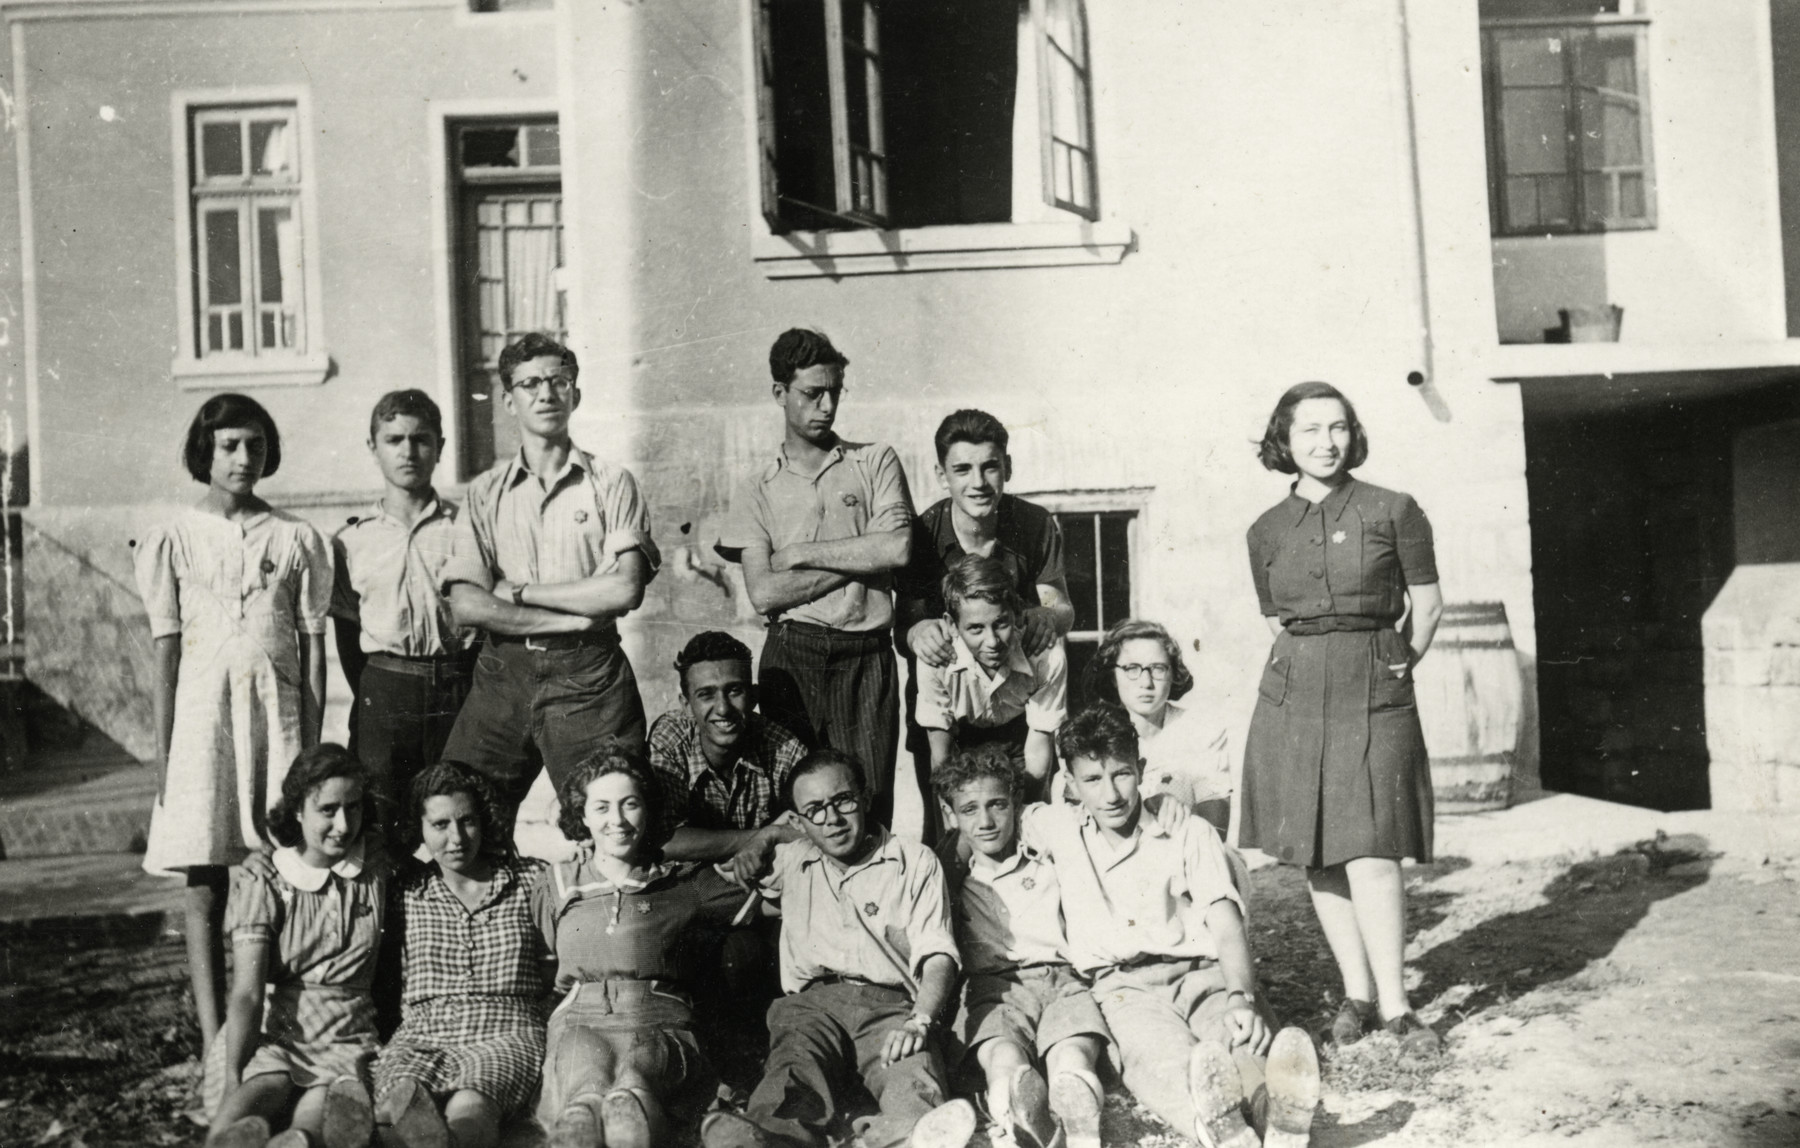 Group portrait of Jewish youth [probably either a school group or Betar] stand outside a building wearing Jewish stars.  Among those pictured are Katia and Maria Gurewitz (right side) and Moshe Ben Aroya.